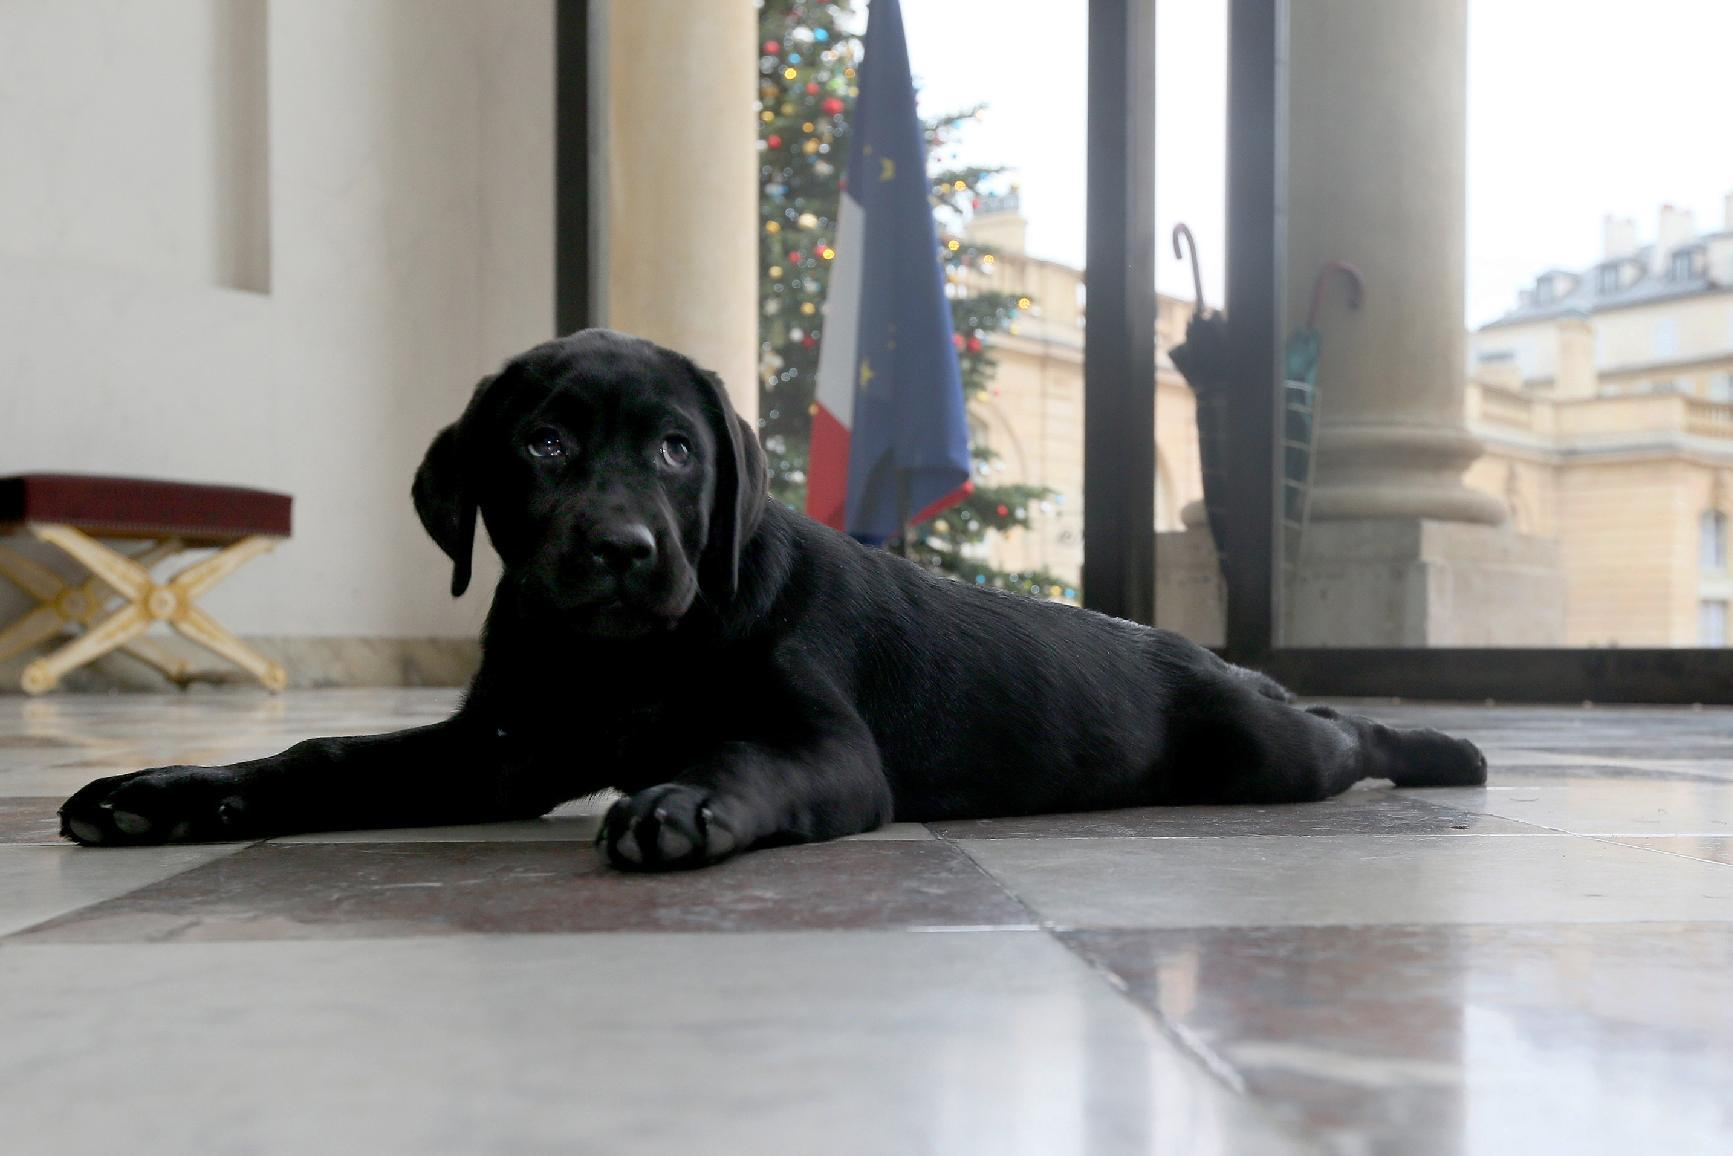 France's Hollande gets a labrador puppy for Christmas